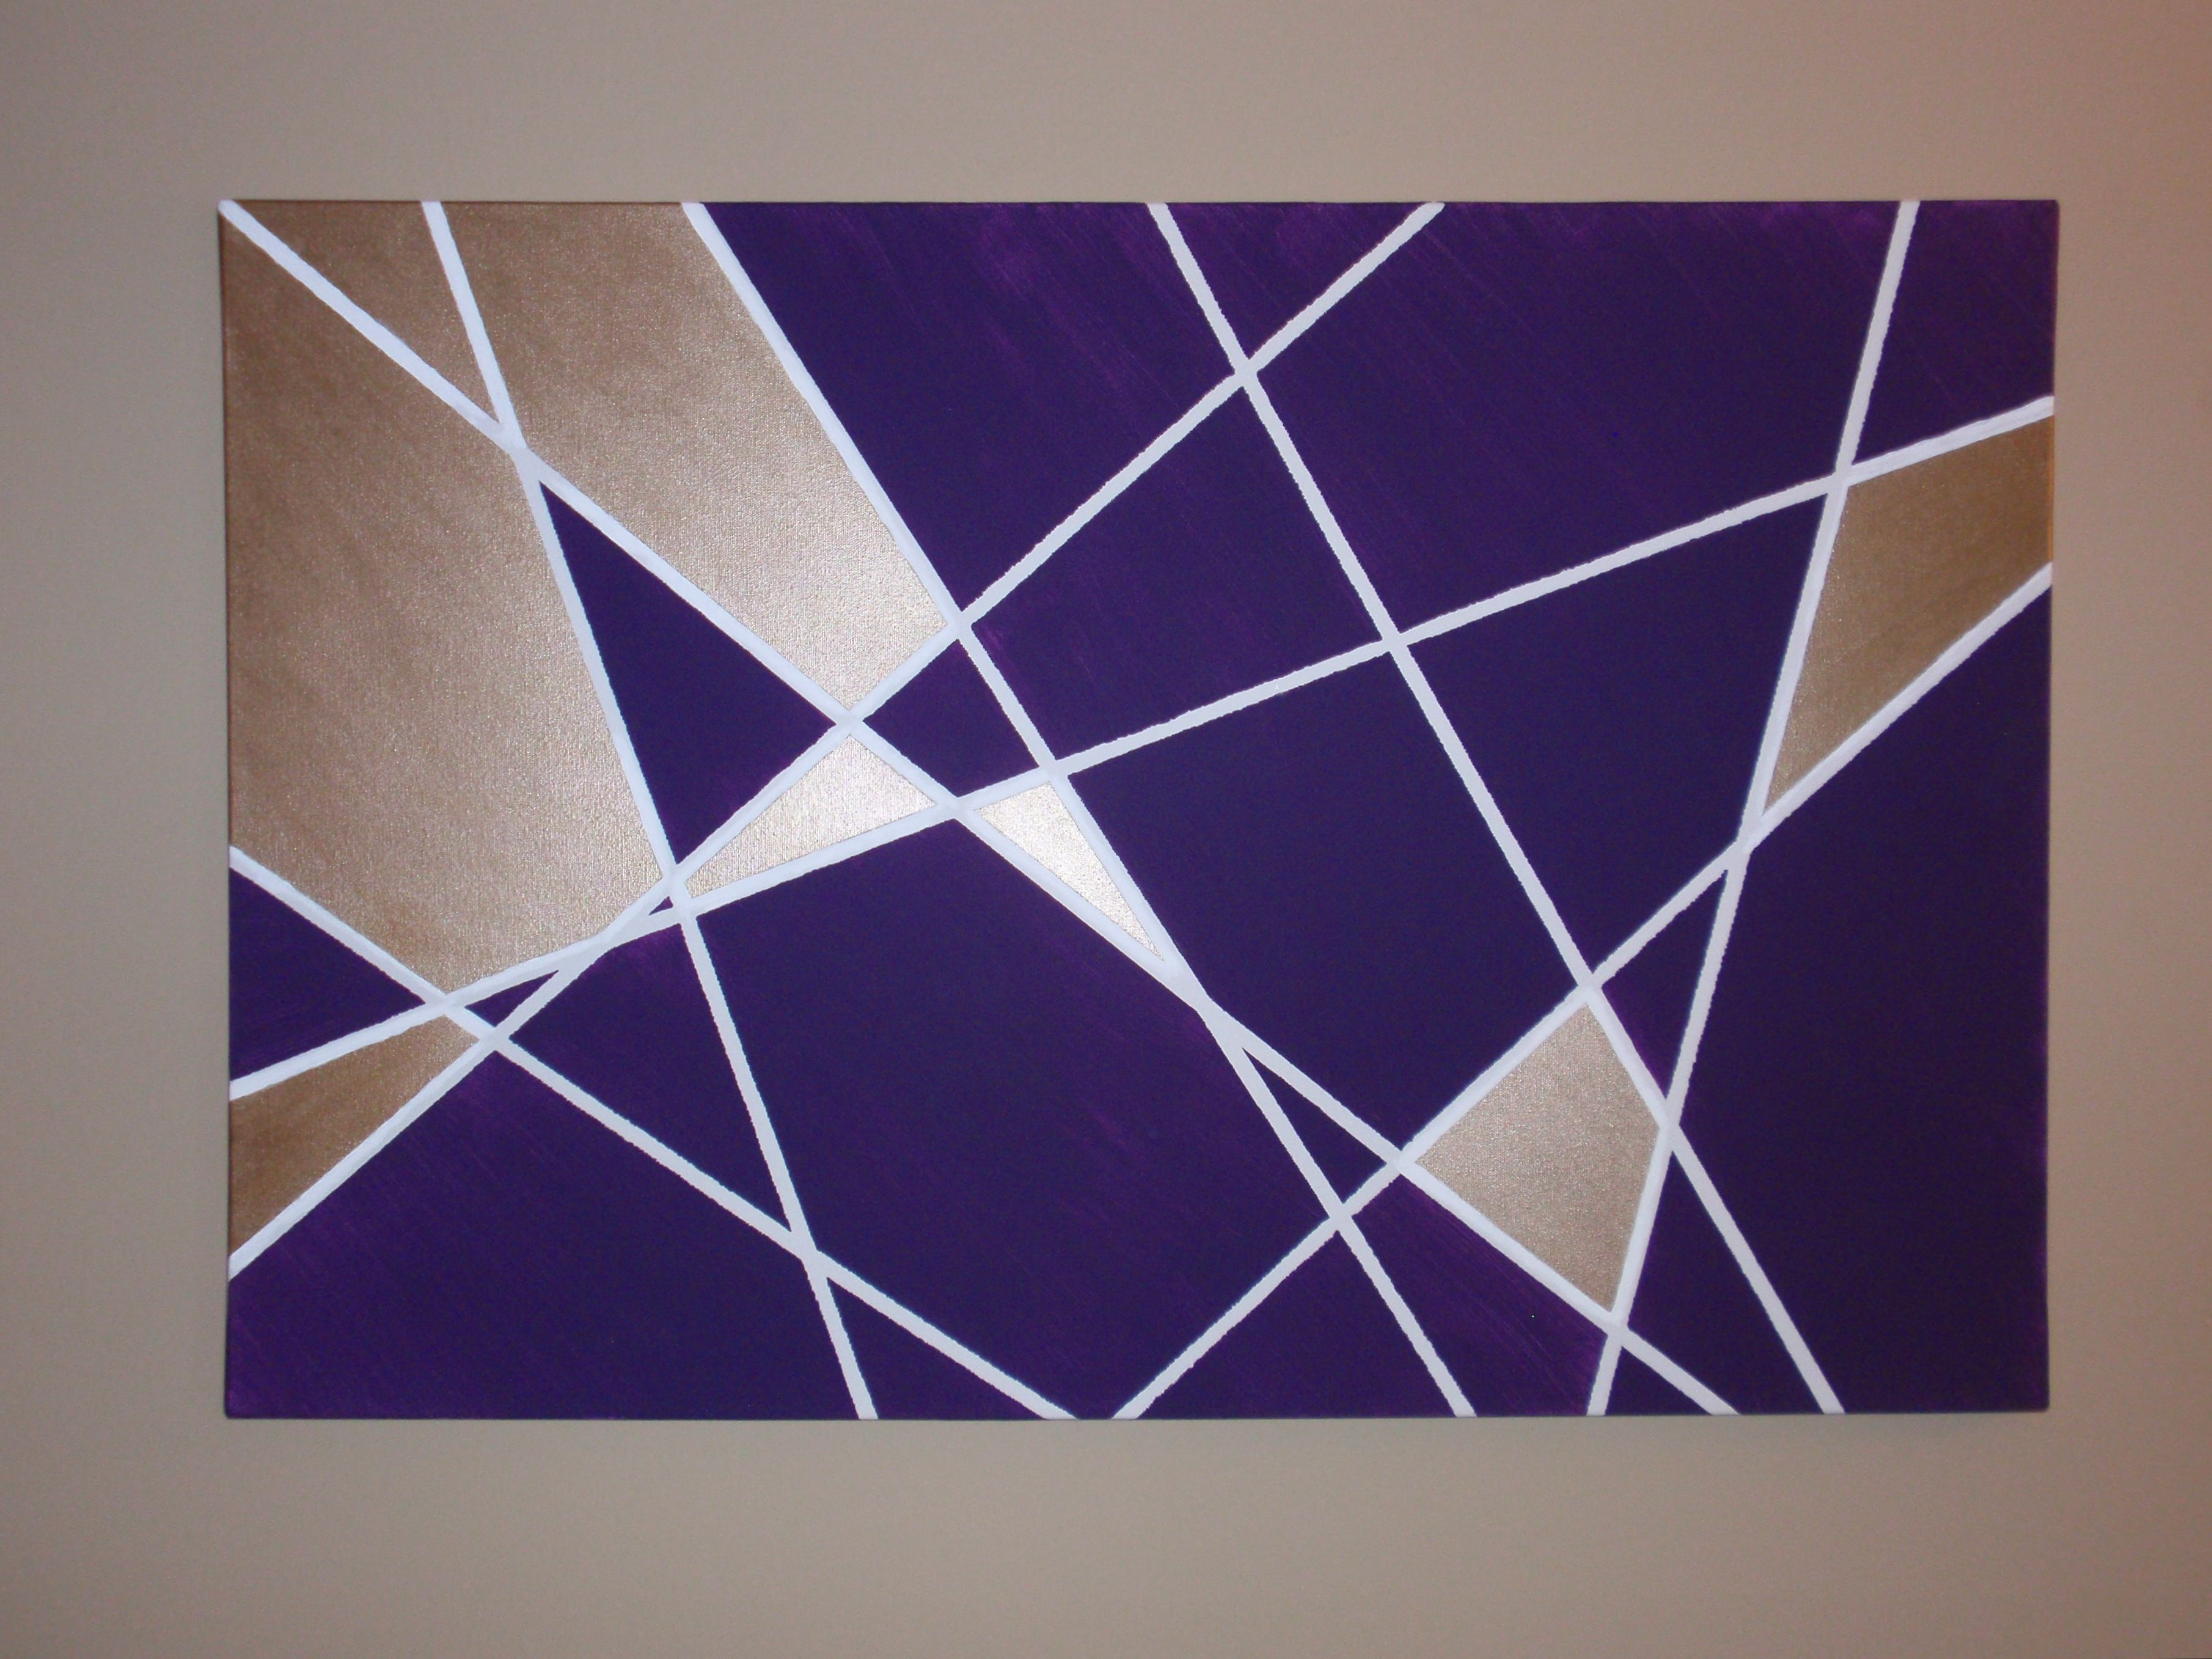 Contemporary Geometric Wall Decor Pertaining To 2019 Wall Art Ideas Design : Purple Rectangle Geometric Wall Art Home (View 4 of 20)